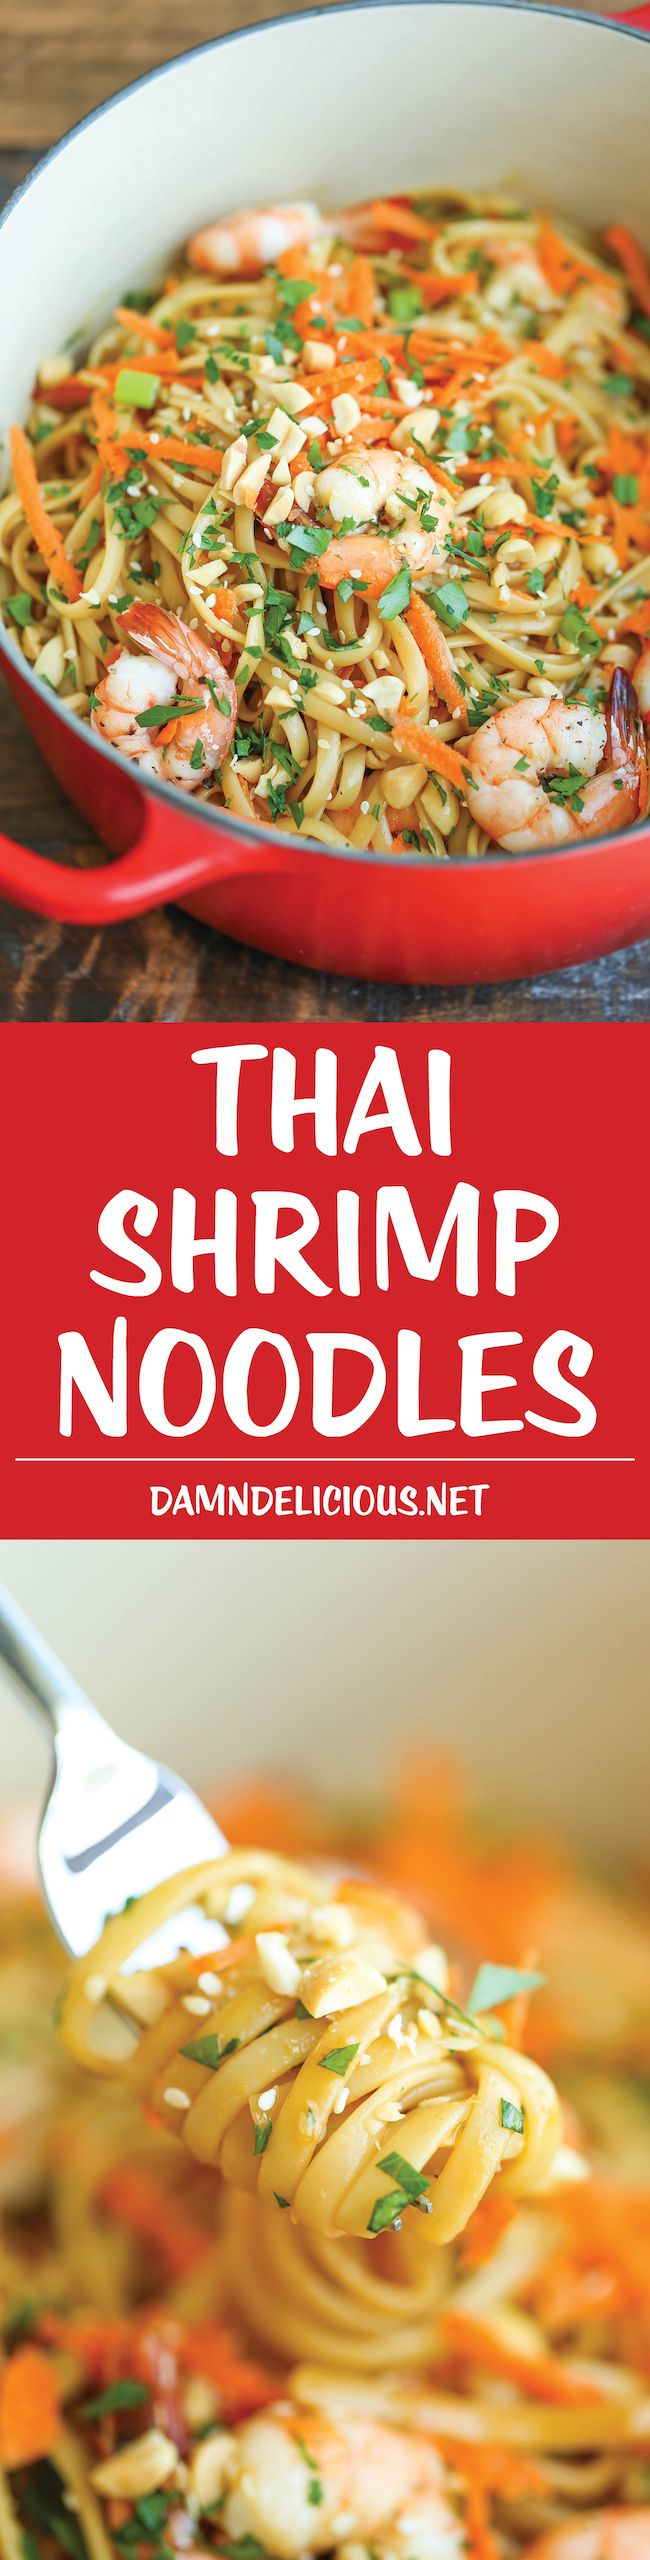 Thai Shrimp Noodles - An easy peasy 20 minute meal that can be easily adapted with more veggies - quicker than take-out and so much tastier (+healthier)!